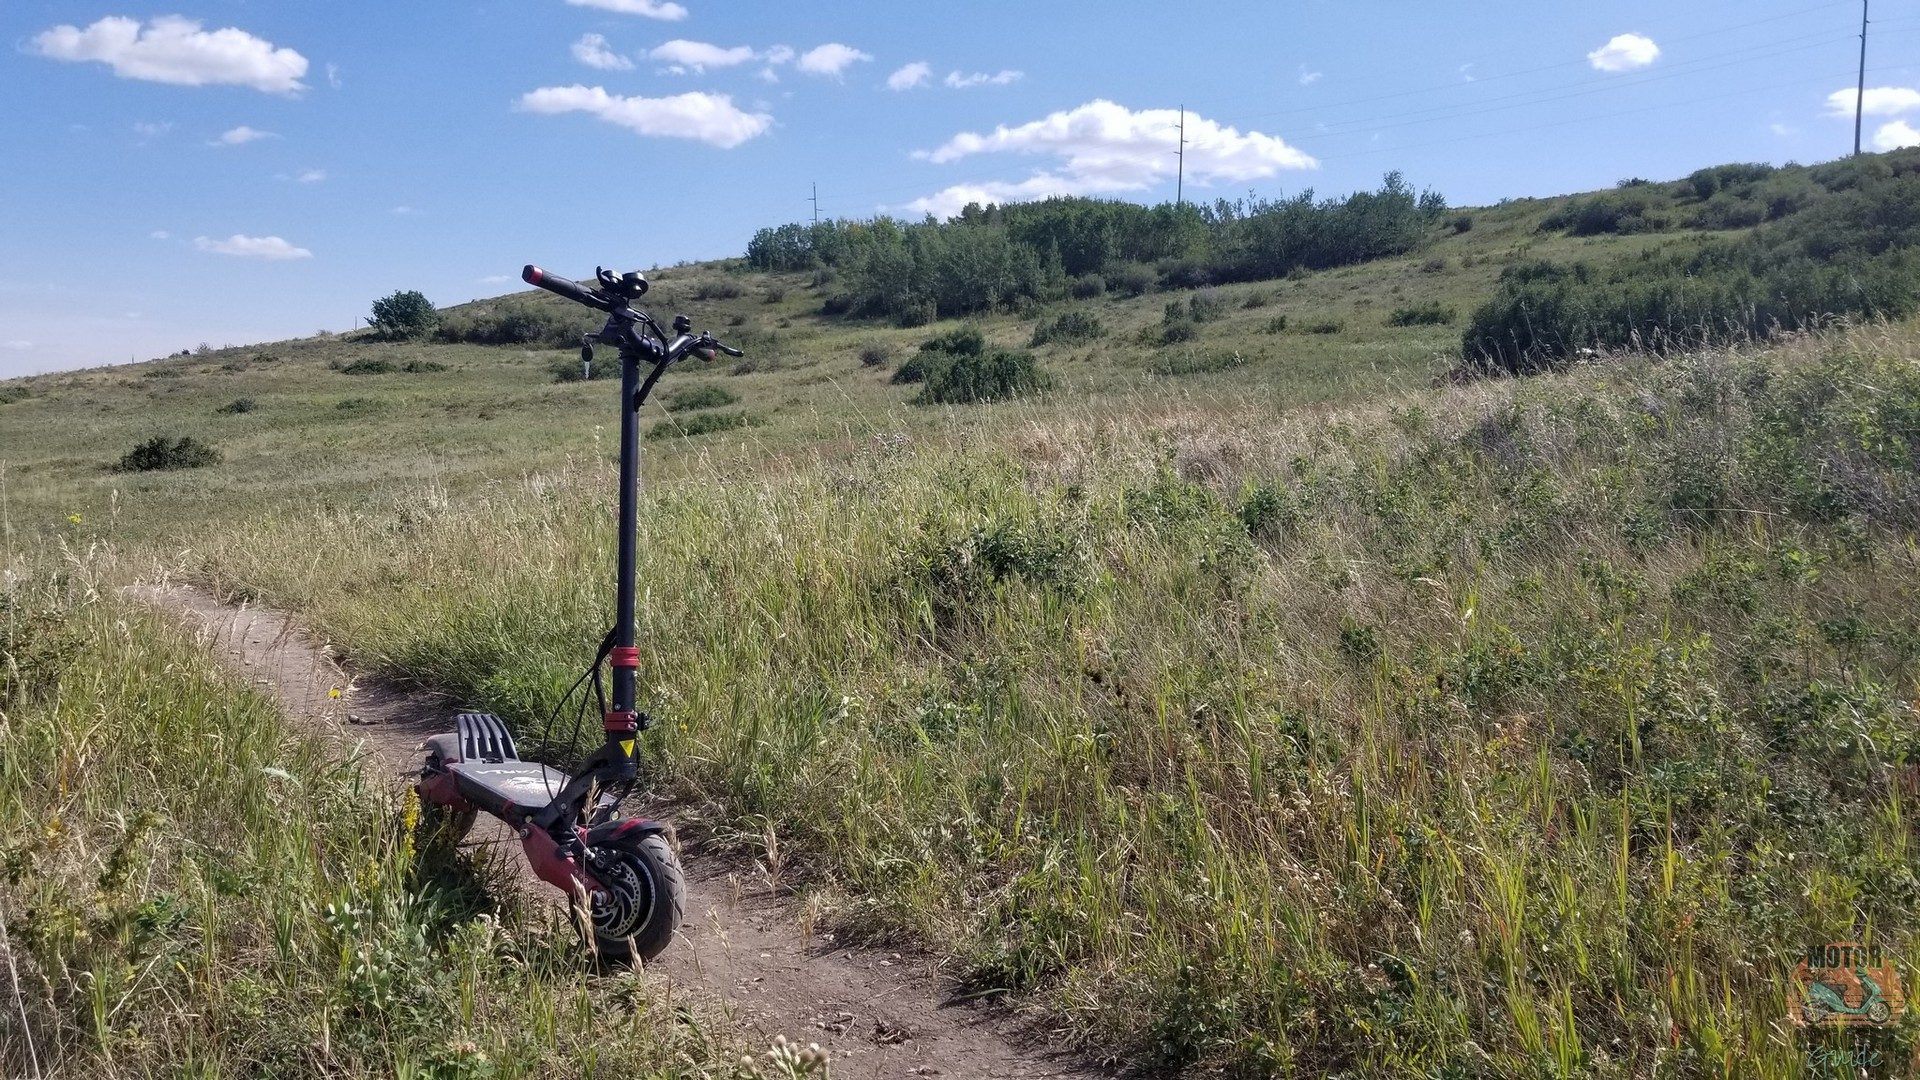 Eagle One scooter parked on side of Nose Hill Park dirt path